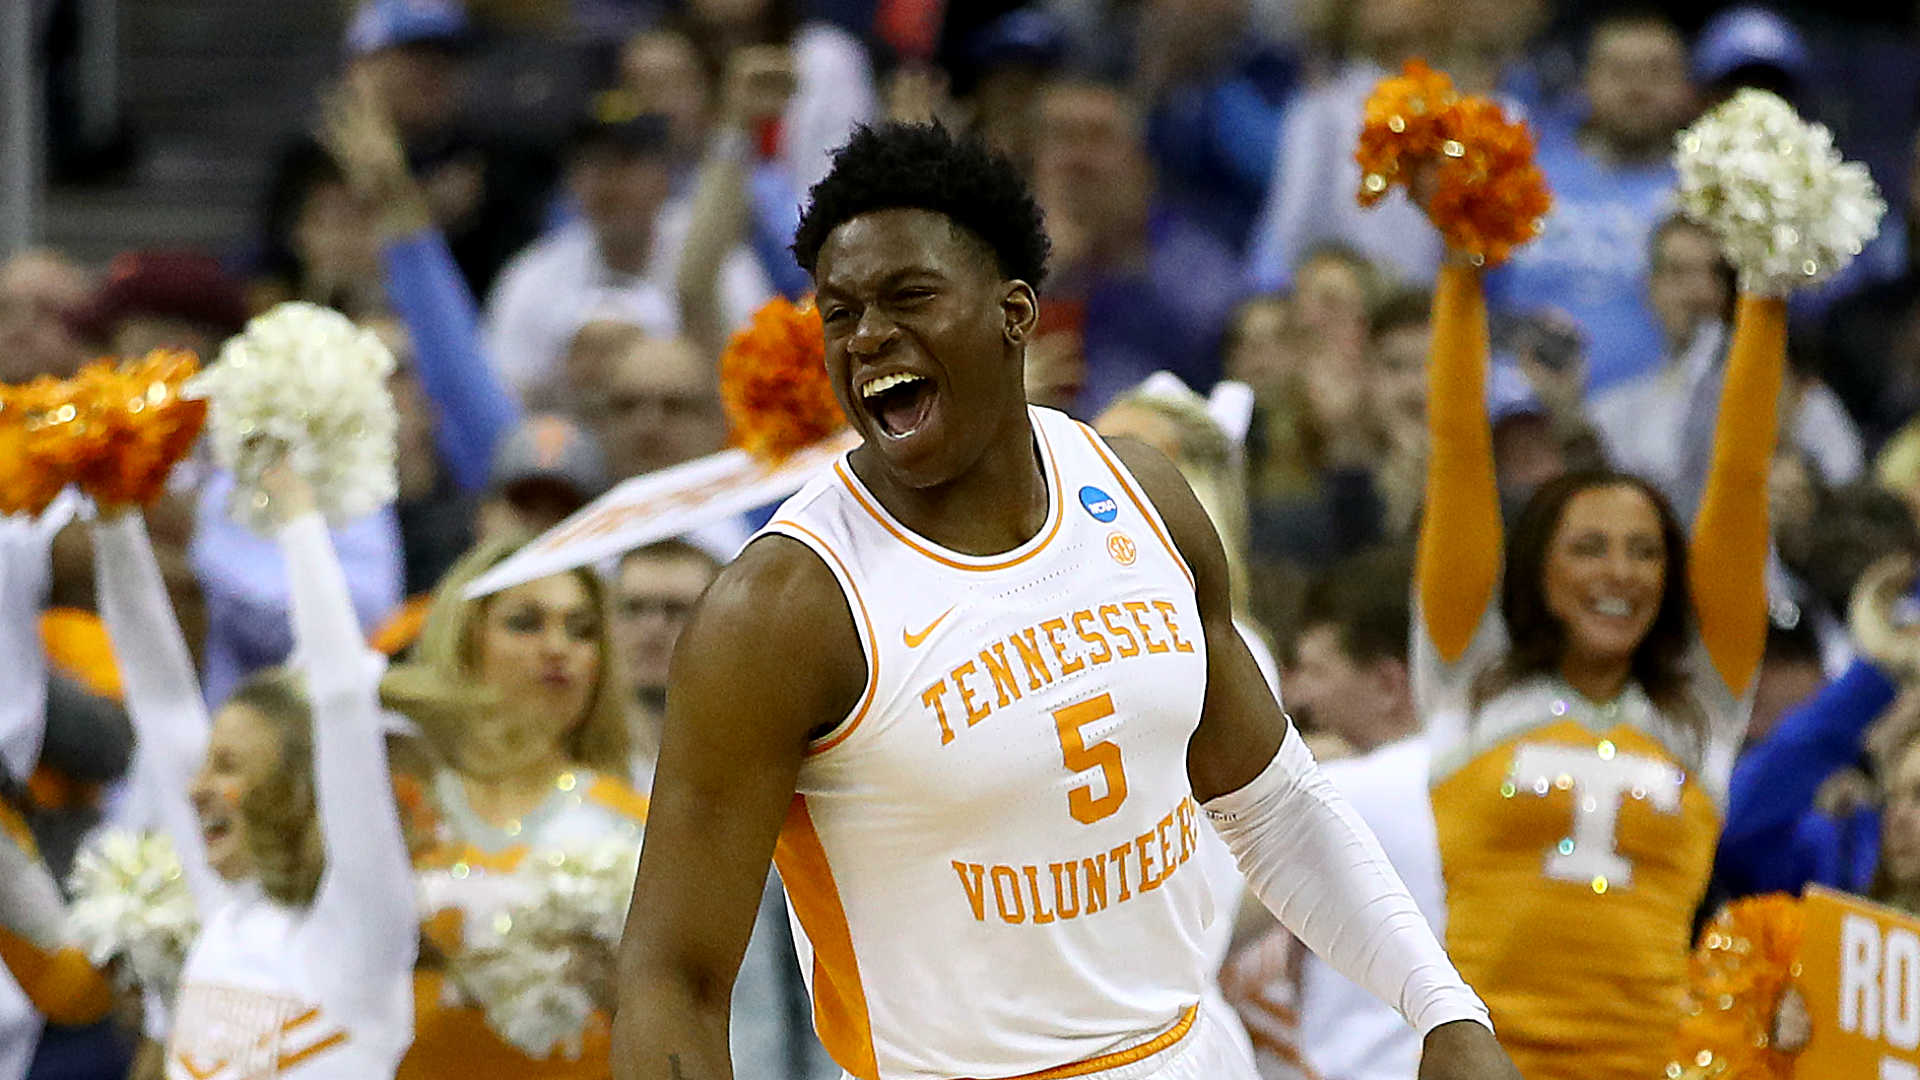 March Madness 2019: Is Tennessee Final Four Good, Or A